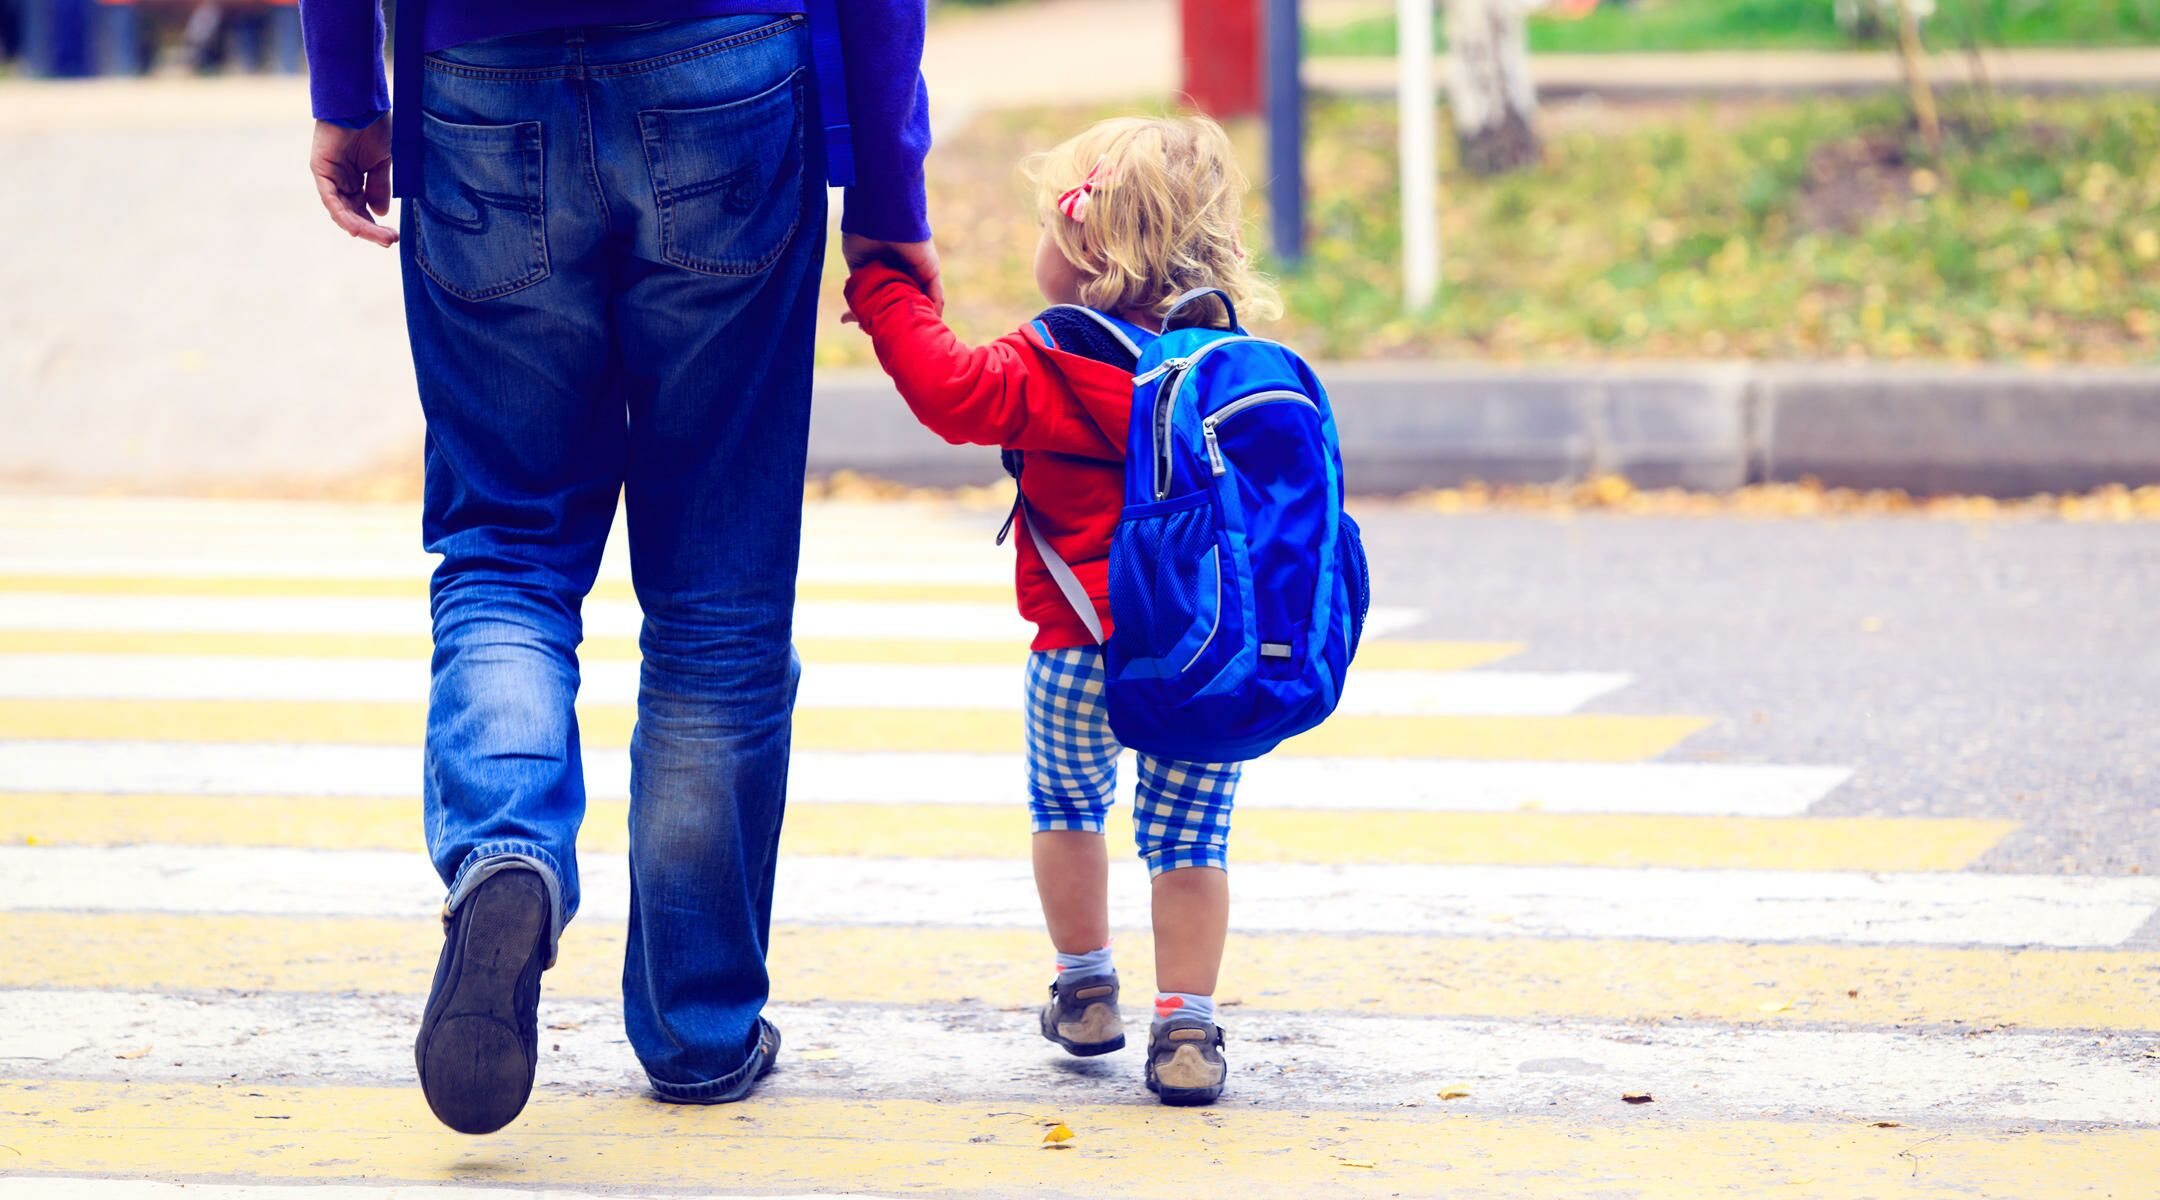 What Are Some Tips for Transitioning Into Day Care?